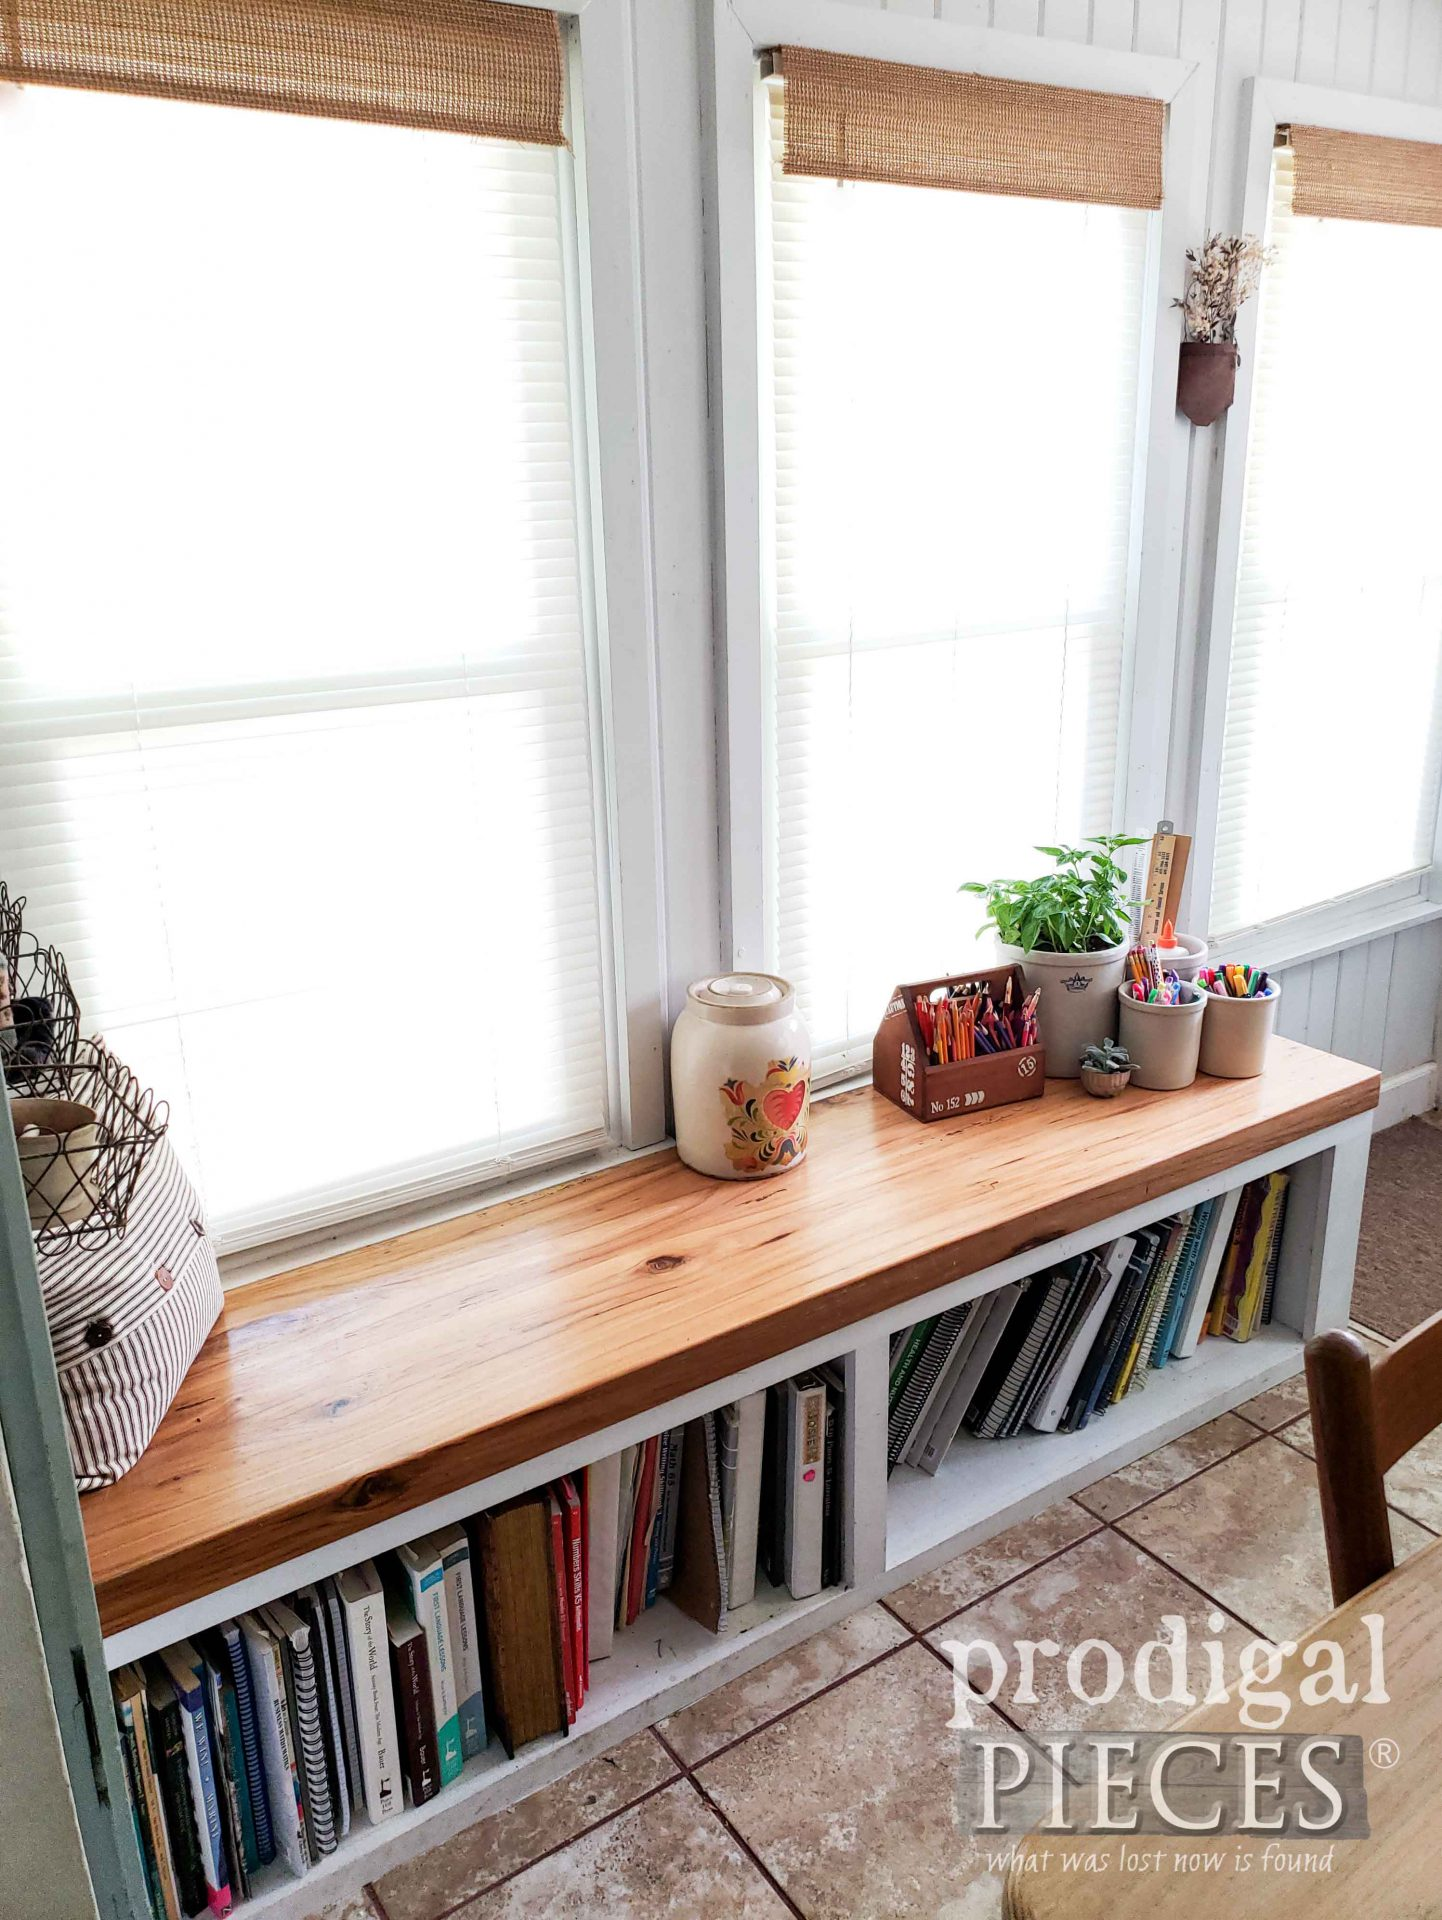 Reclaimed Hickory Wood Bookshelf with Built-In Bench by Larissa of Prodigal Pieces | prodigalpieces.com #prodigalpieces #diy #farmhouse #home #reclaimed #homedecor #diy